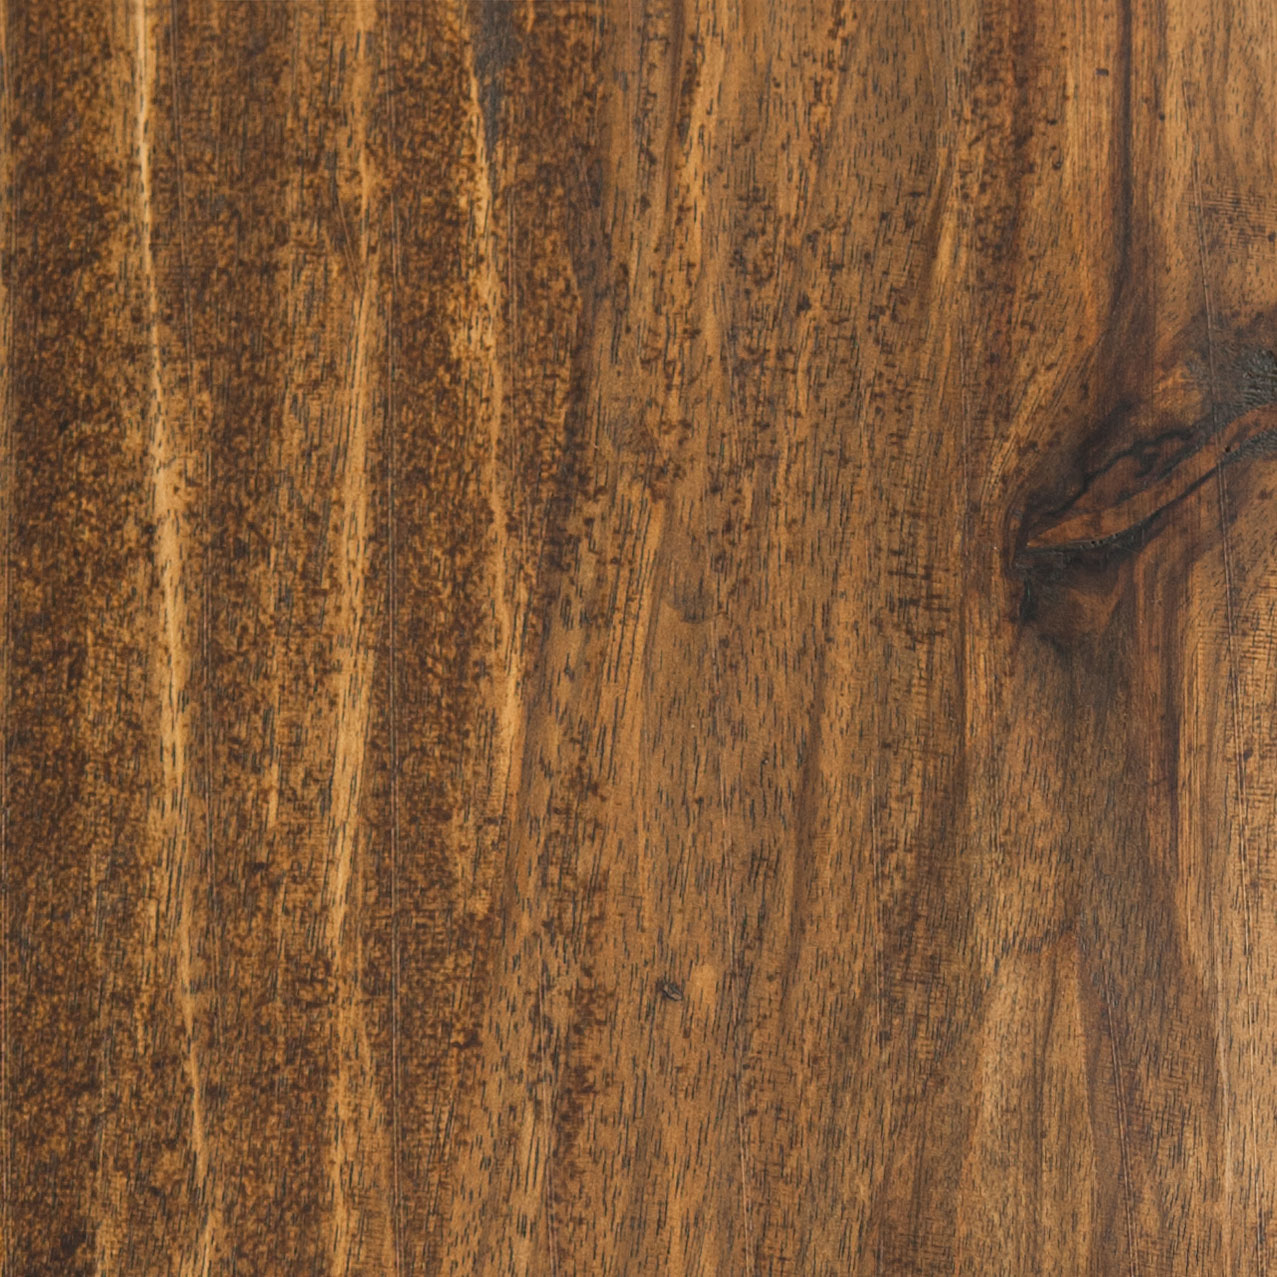 Element7-wide-plank-samples-reclaimed-brown-walnut-IMG_1927